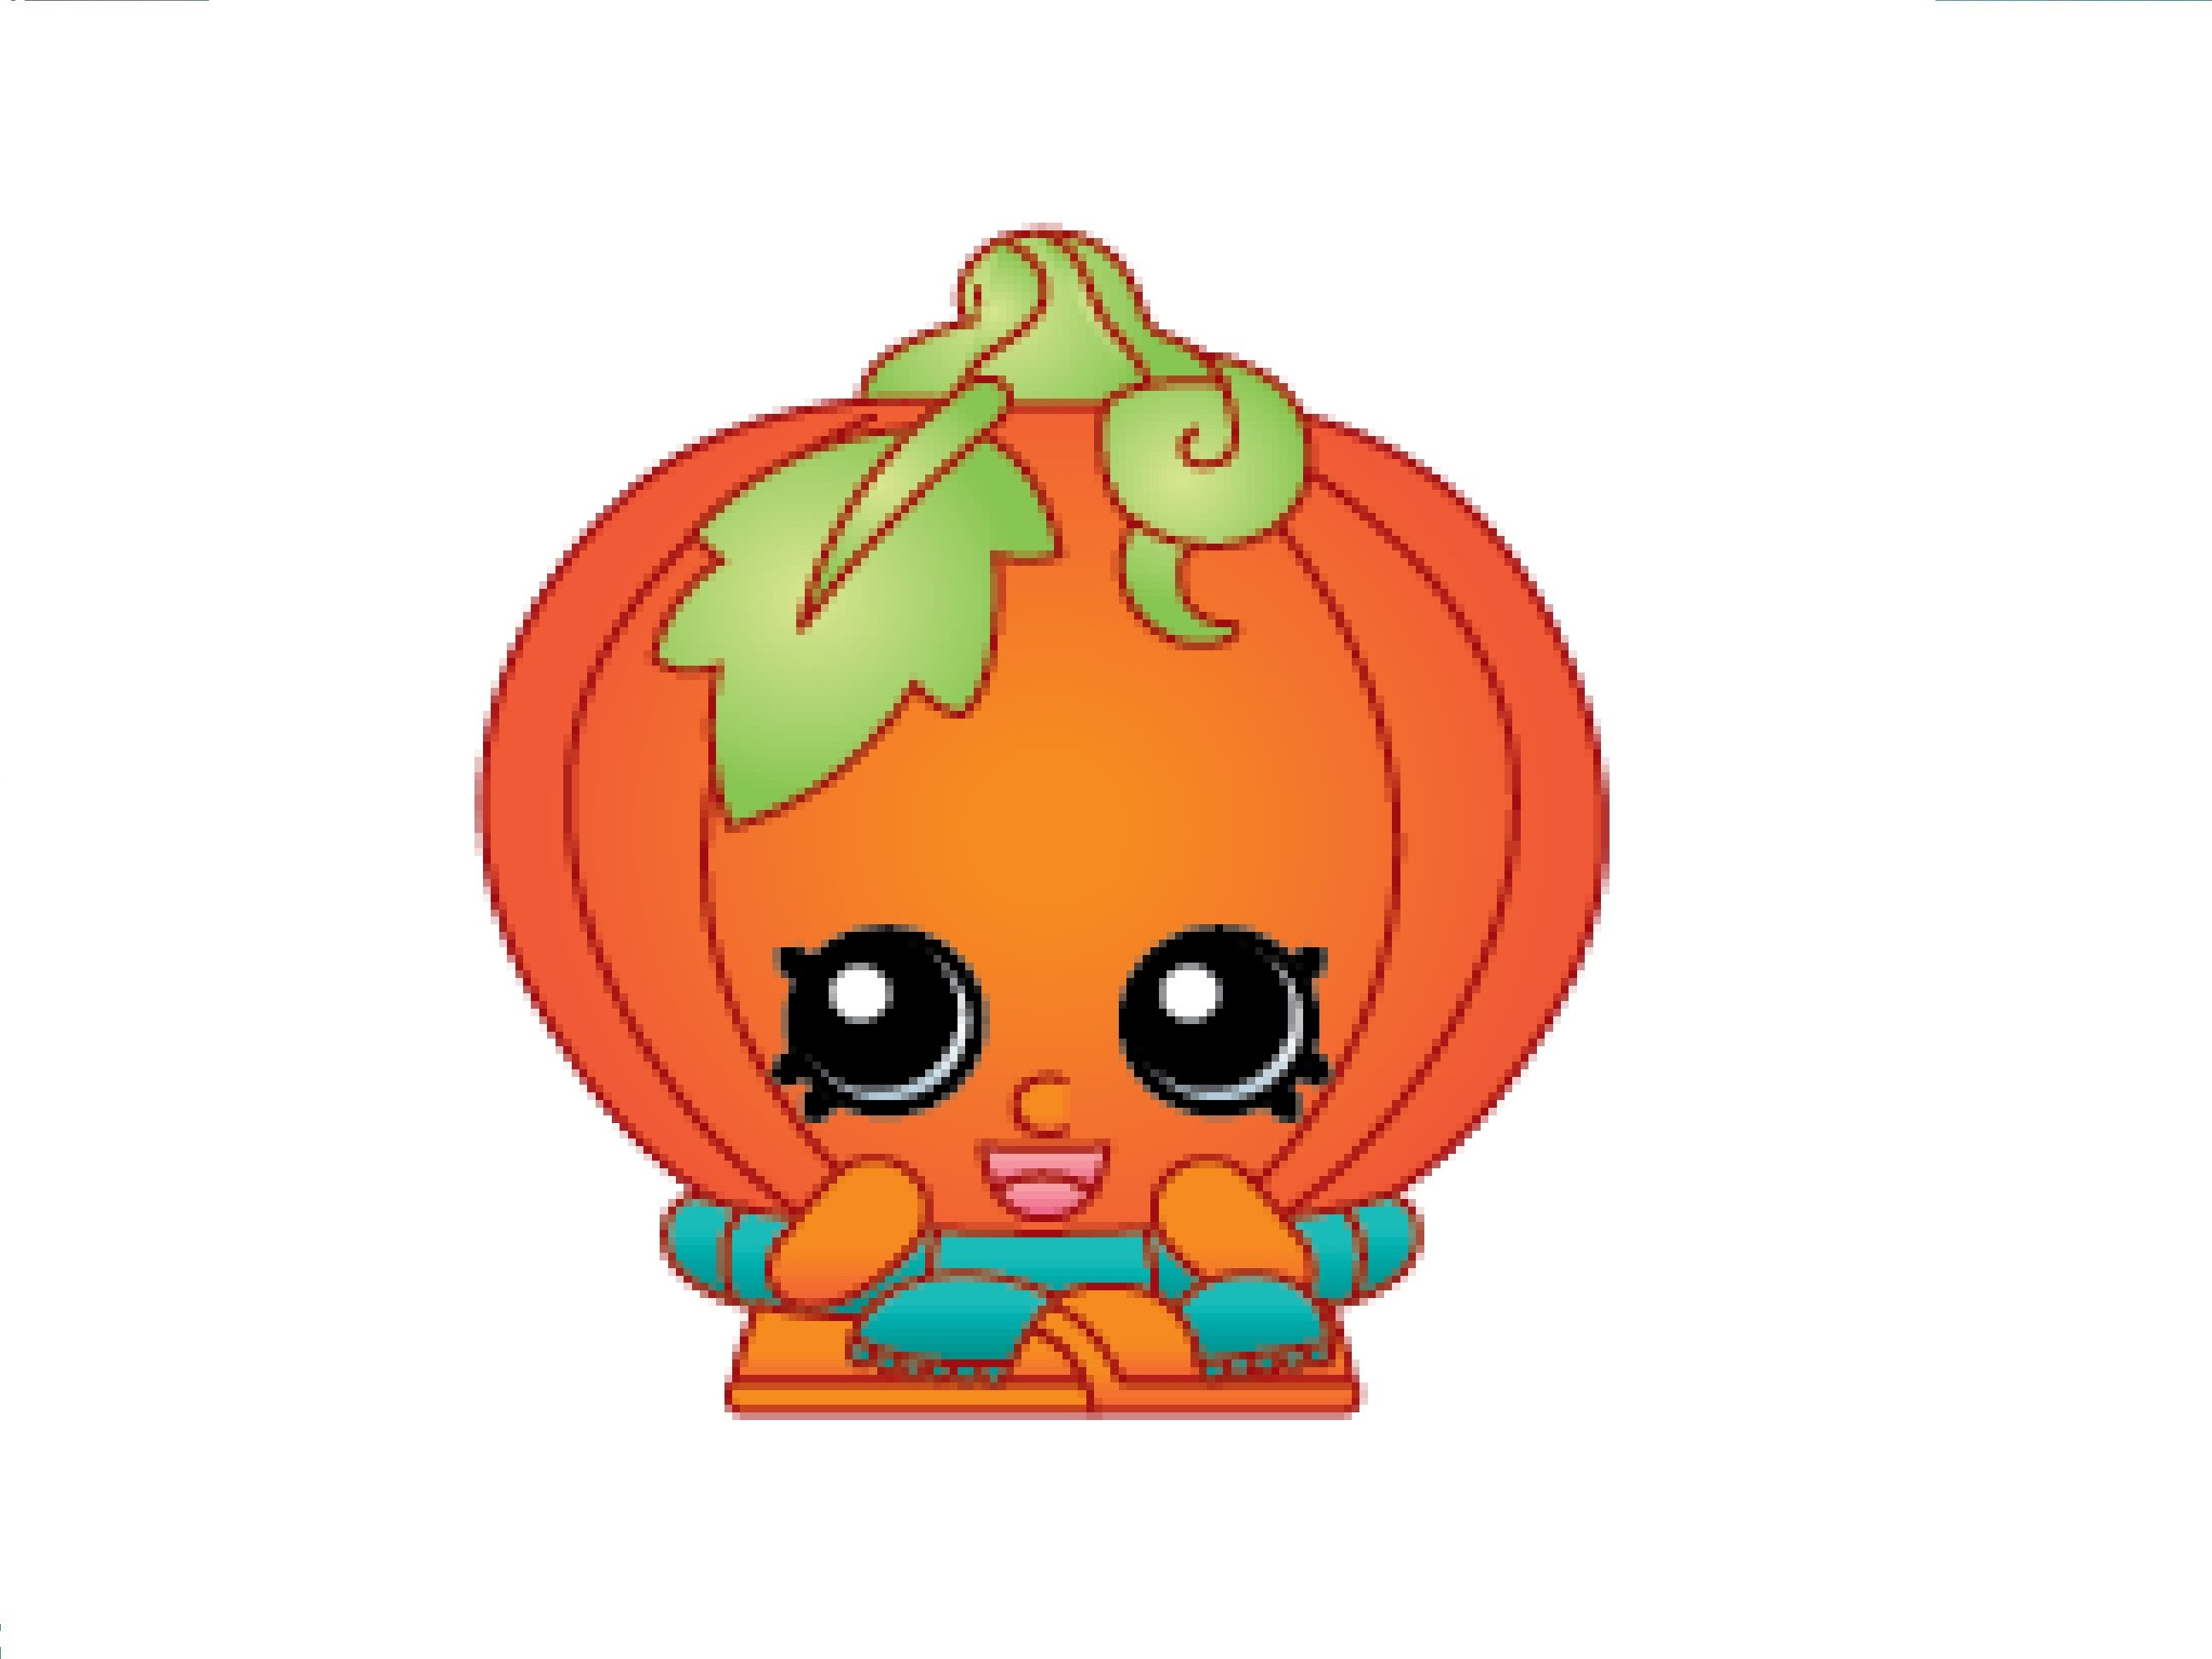 Shopkins pumpkin clipart svg royalty free download How to Draw a Pumpkinella / Как нарисовать Pumpkinella - YouTube svg royalty free download